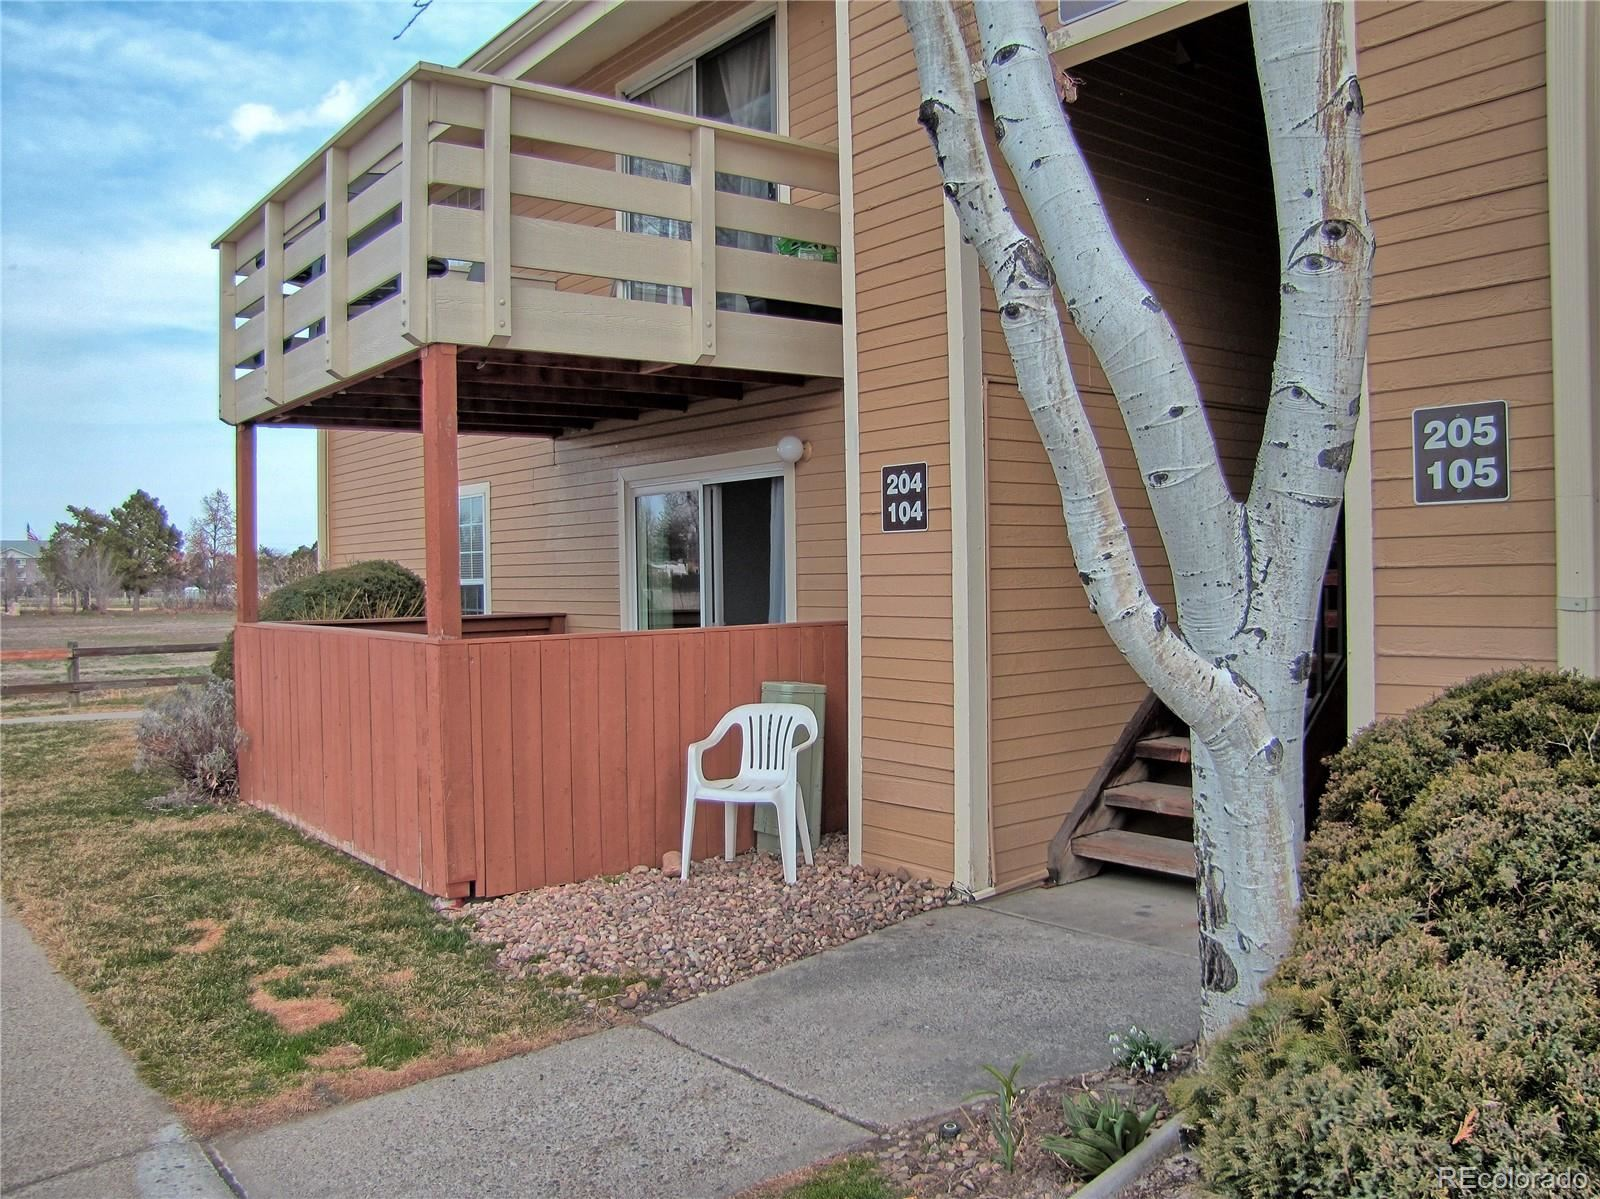 10251 W 44th Avenue  6-104 #6-104, Wheat Ridge, CO 80033 - #: 8479187